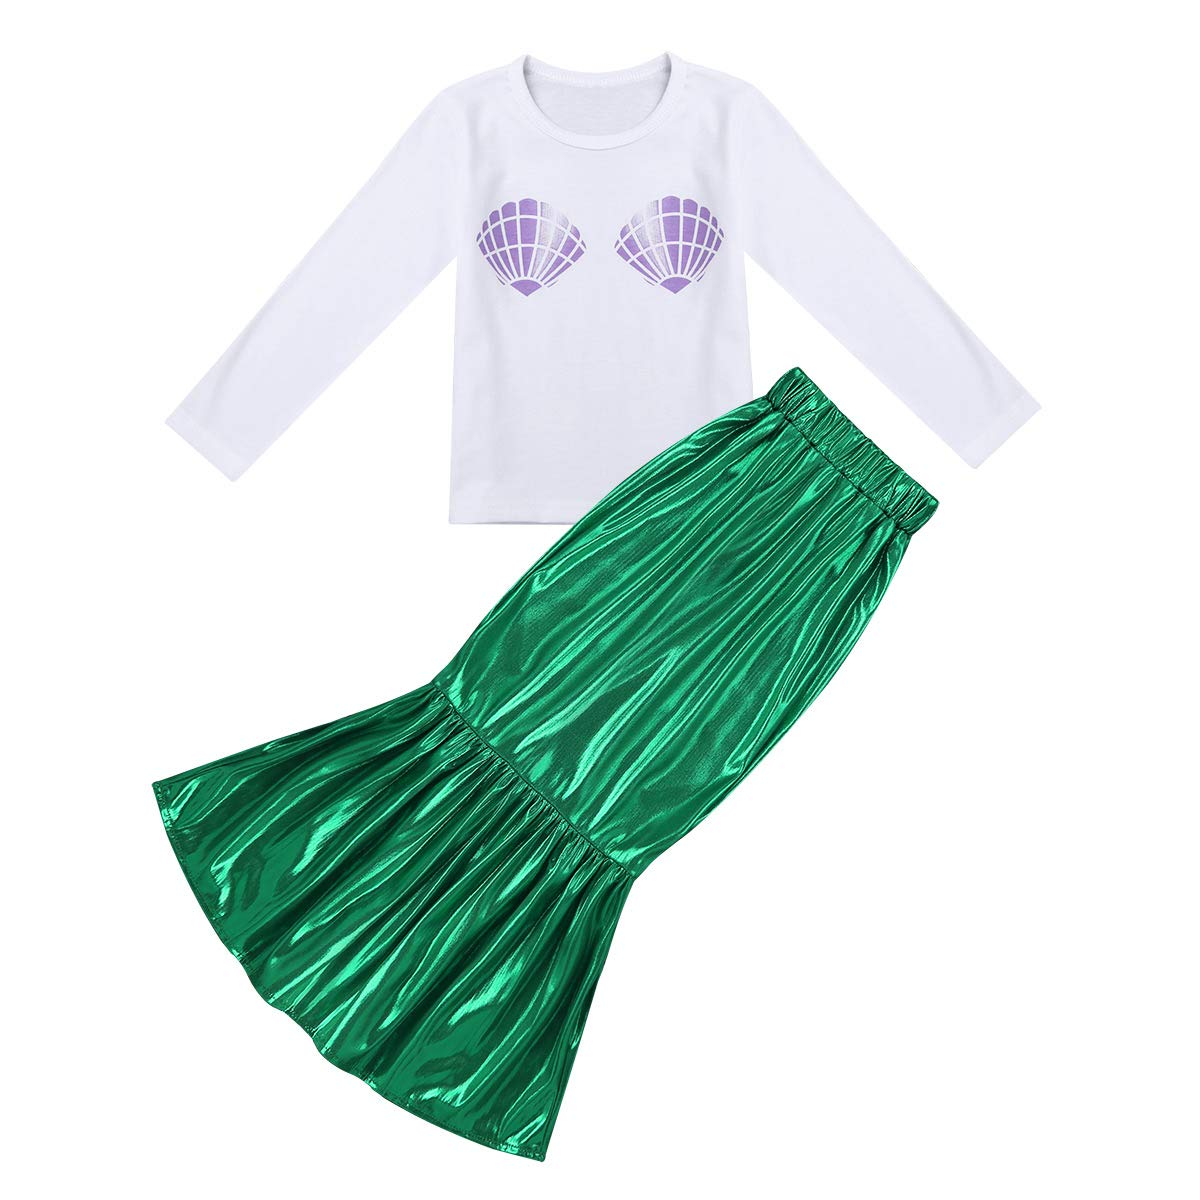 2cb3cfb9226b Amazon.com: TiaoBug 2pcs Little Girls Mermaid Skirt + Shell T-Shirt Outfit  Halloween Party Cosplay Dress up Costumes: Clothing